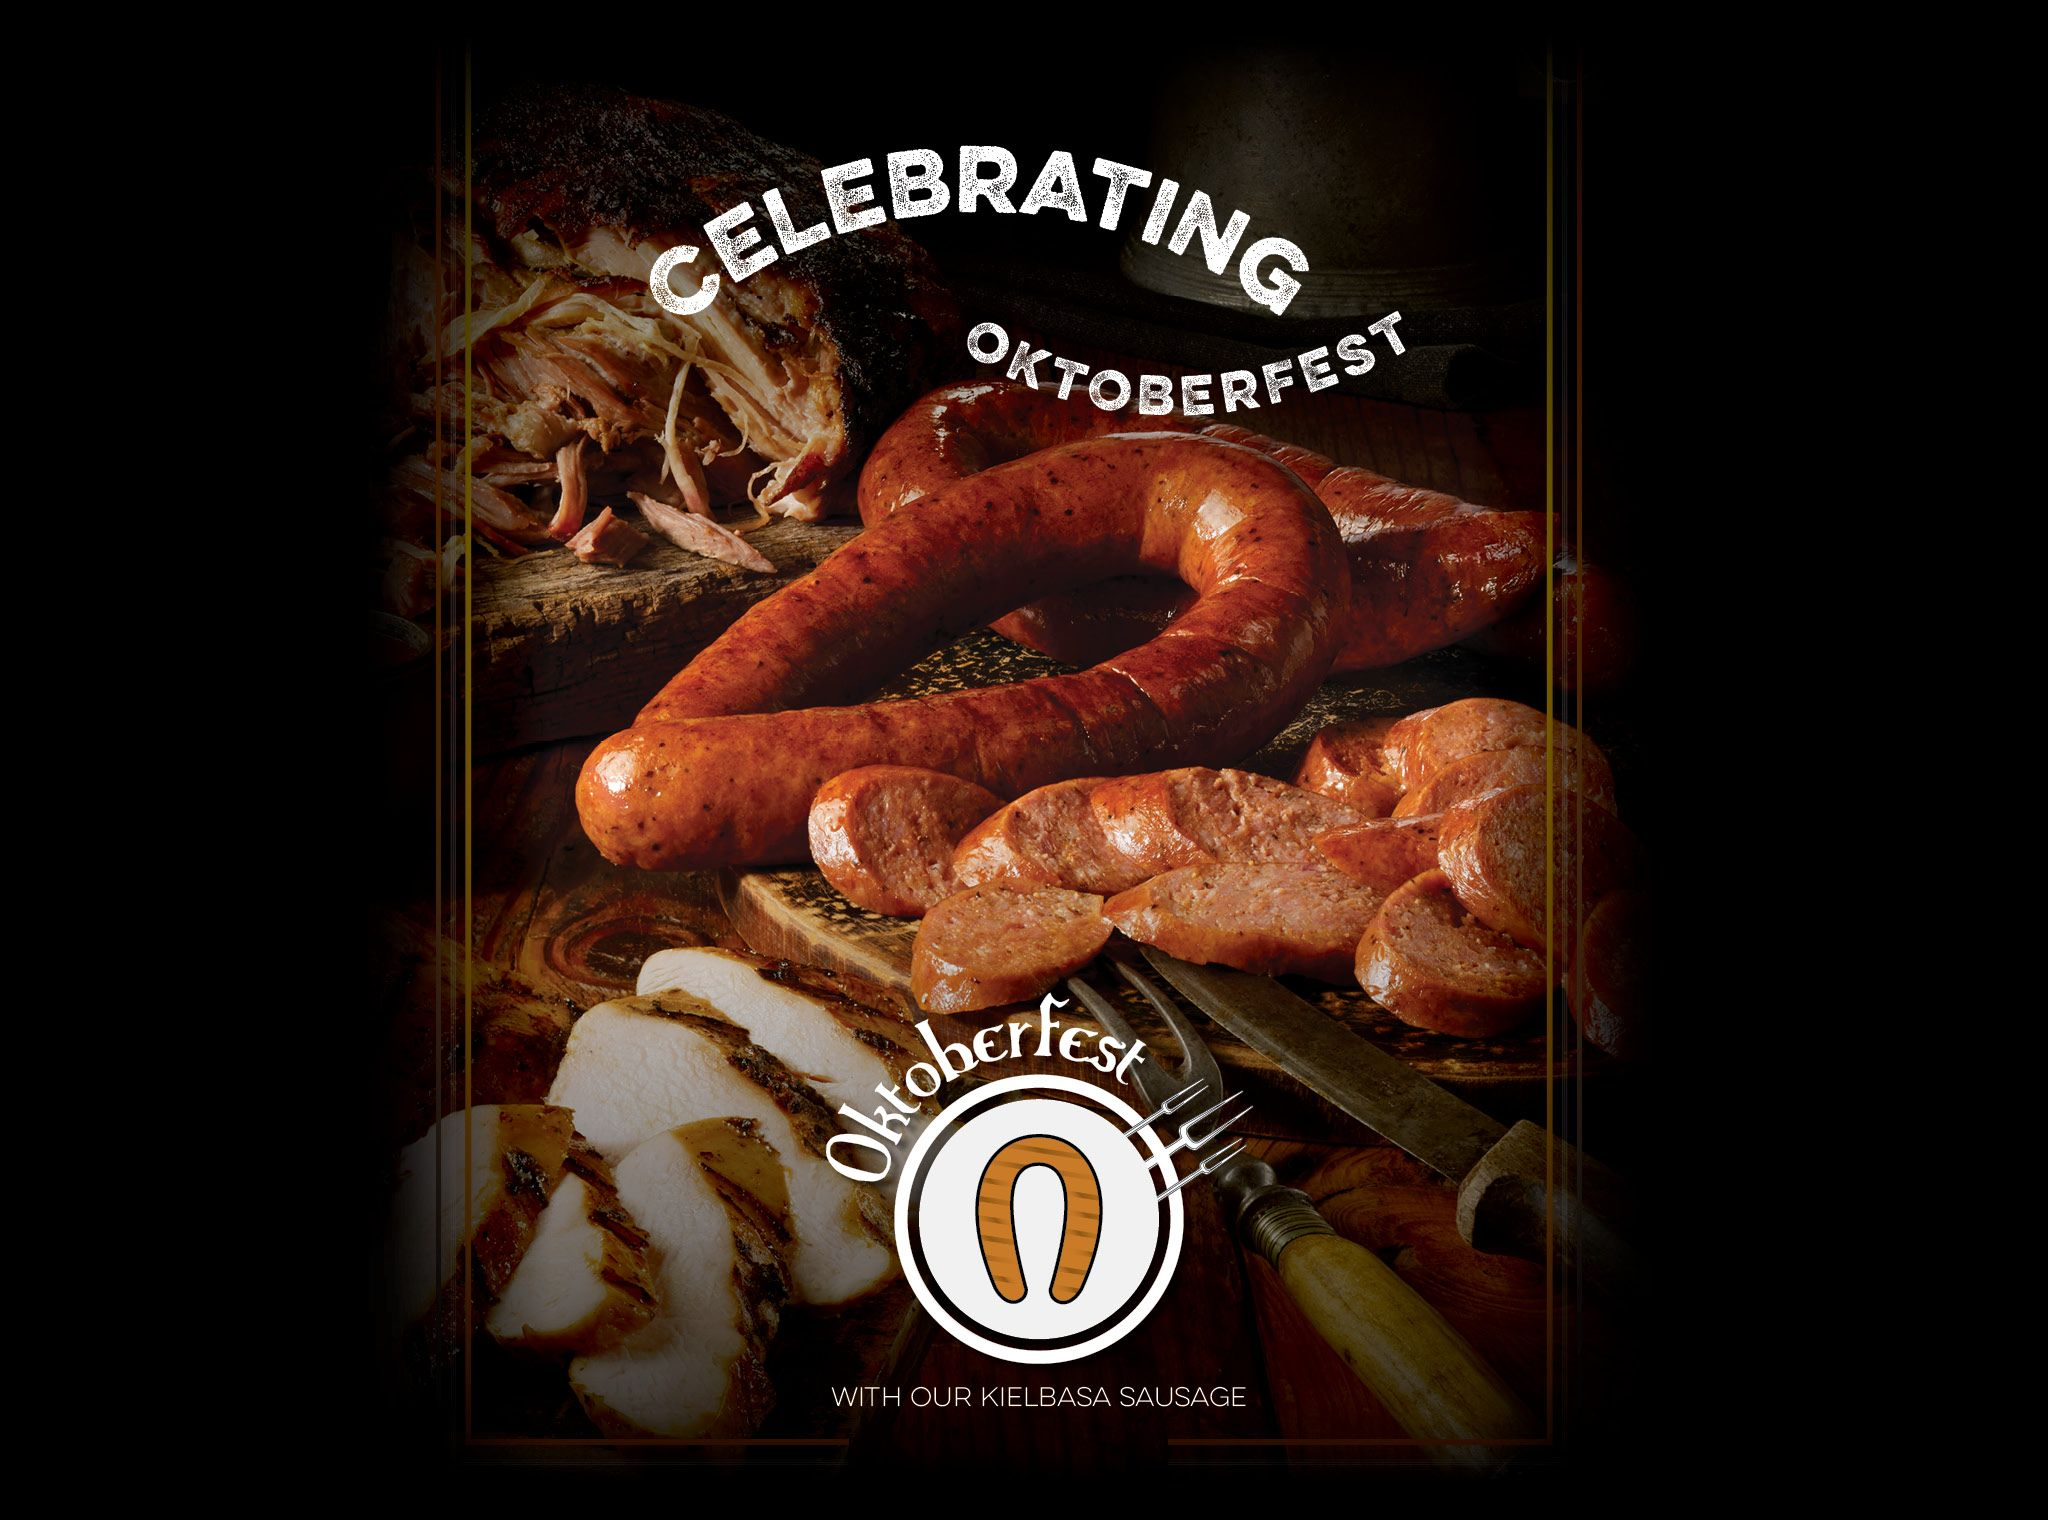 Find Everything You Need to Host Your Own Oktoberfest Online Barbecue At Home Makes It as Easy as 1-2-3.